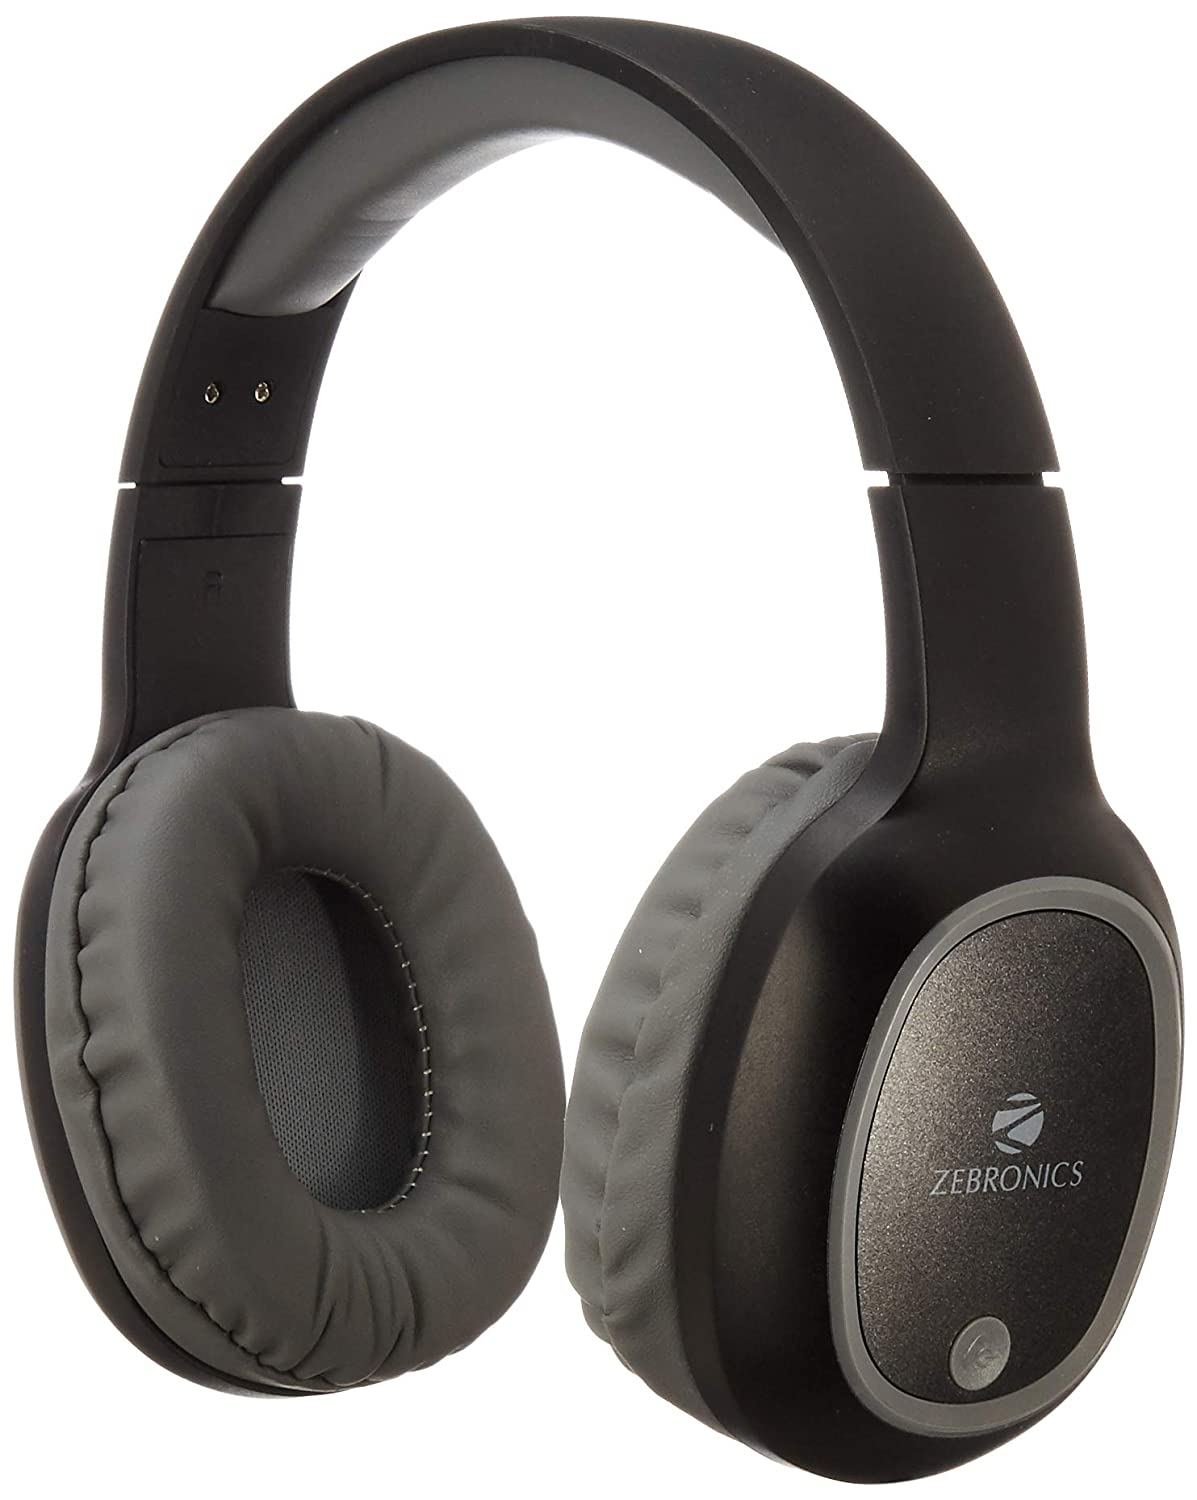 Zebronics Zeb-Thunder Wireless BT Headphone Image